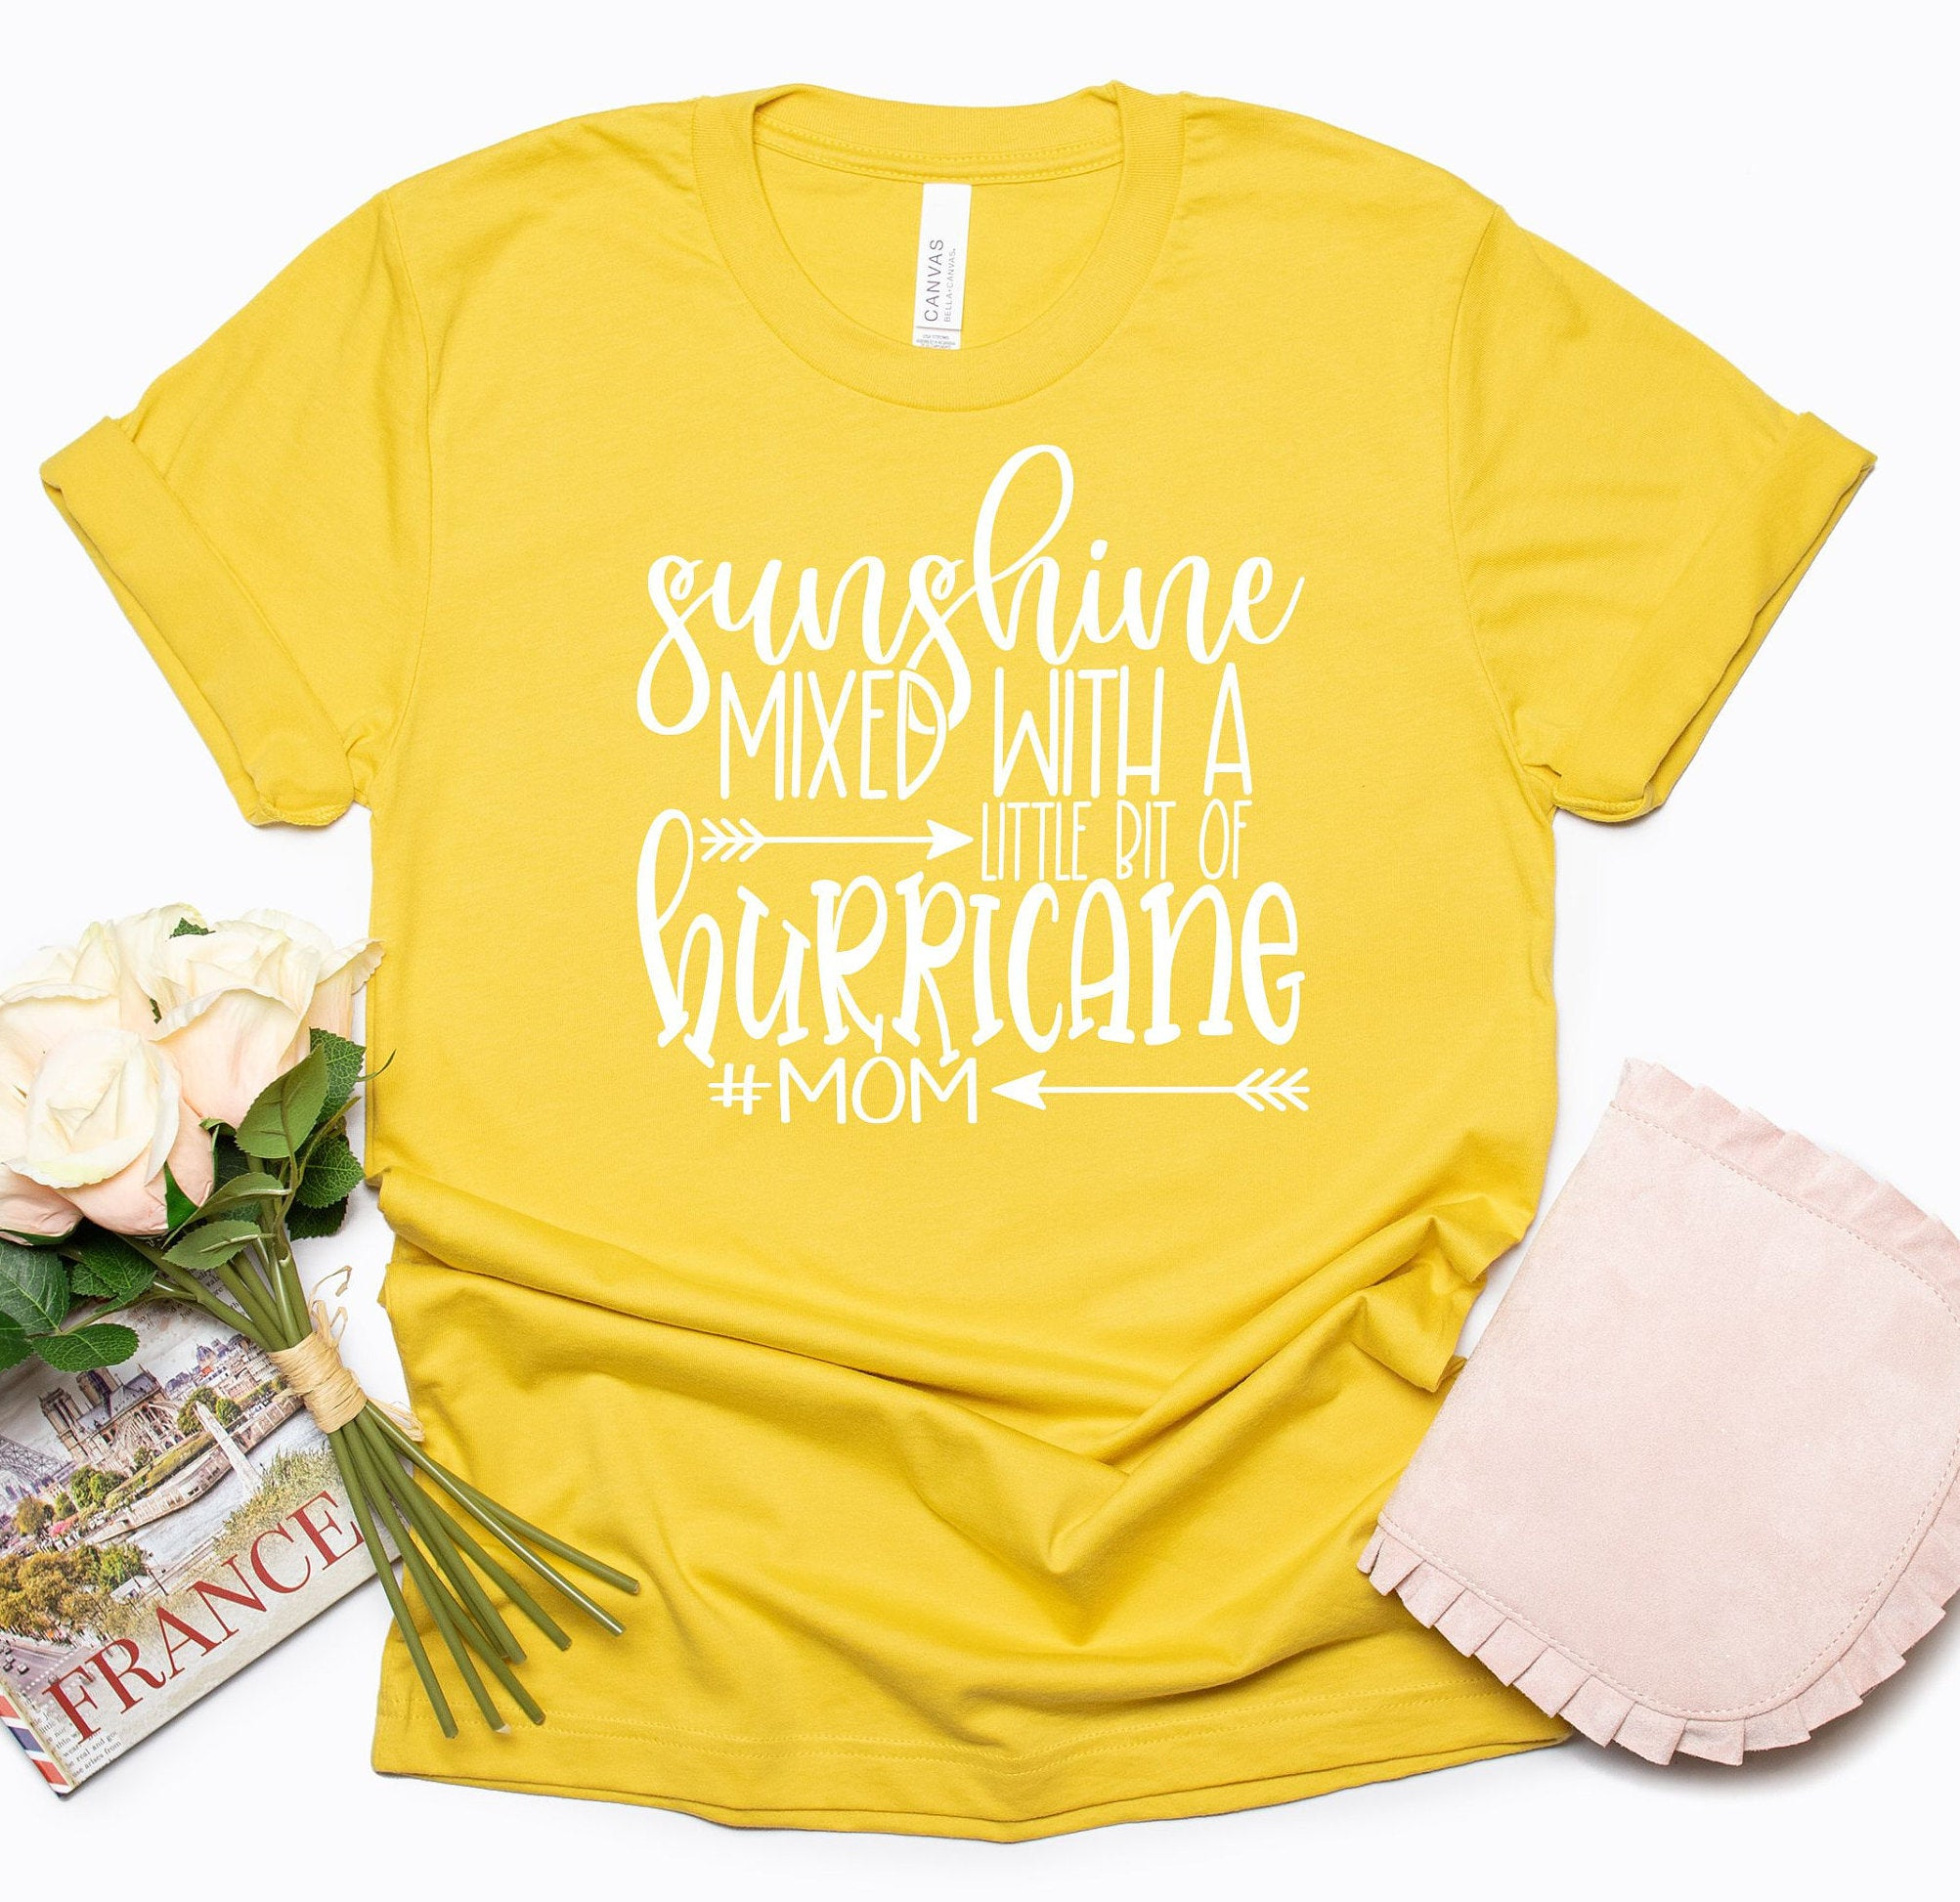 Sunshine-with-hurricane-svg-mothers-day-svg-girl-mom-svg-boy-mom-svg-mom-quote-svg-motherhood-svg-mothers-day-svg-design-cricut-60514a4a